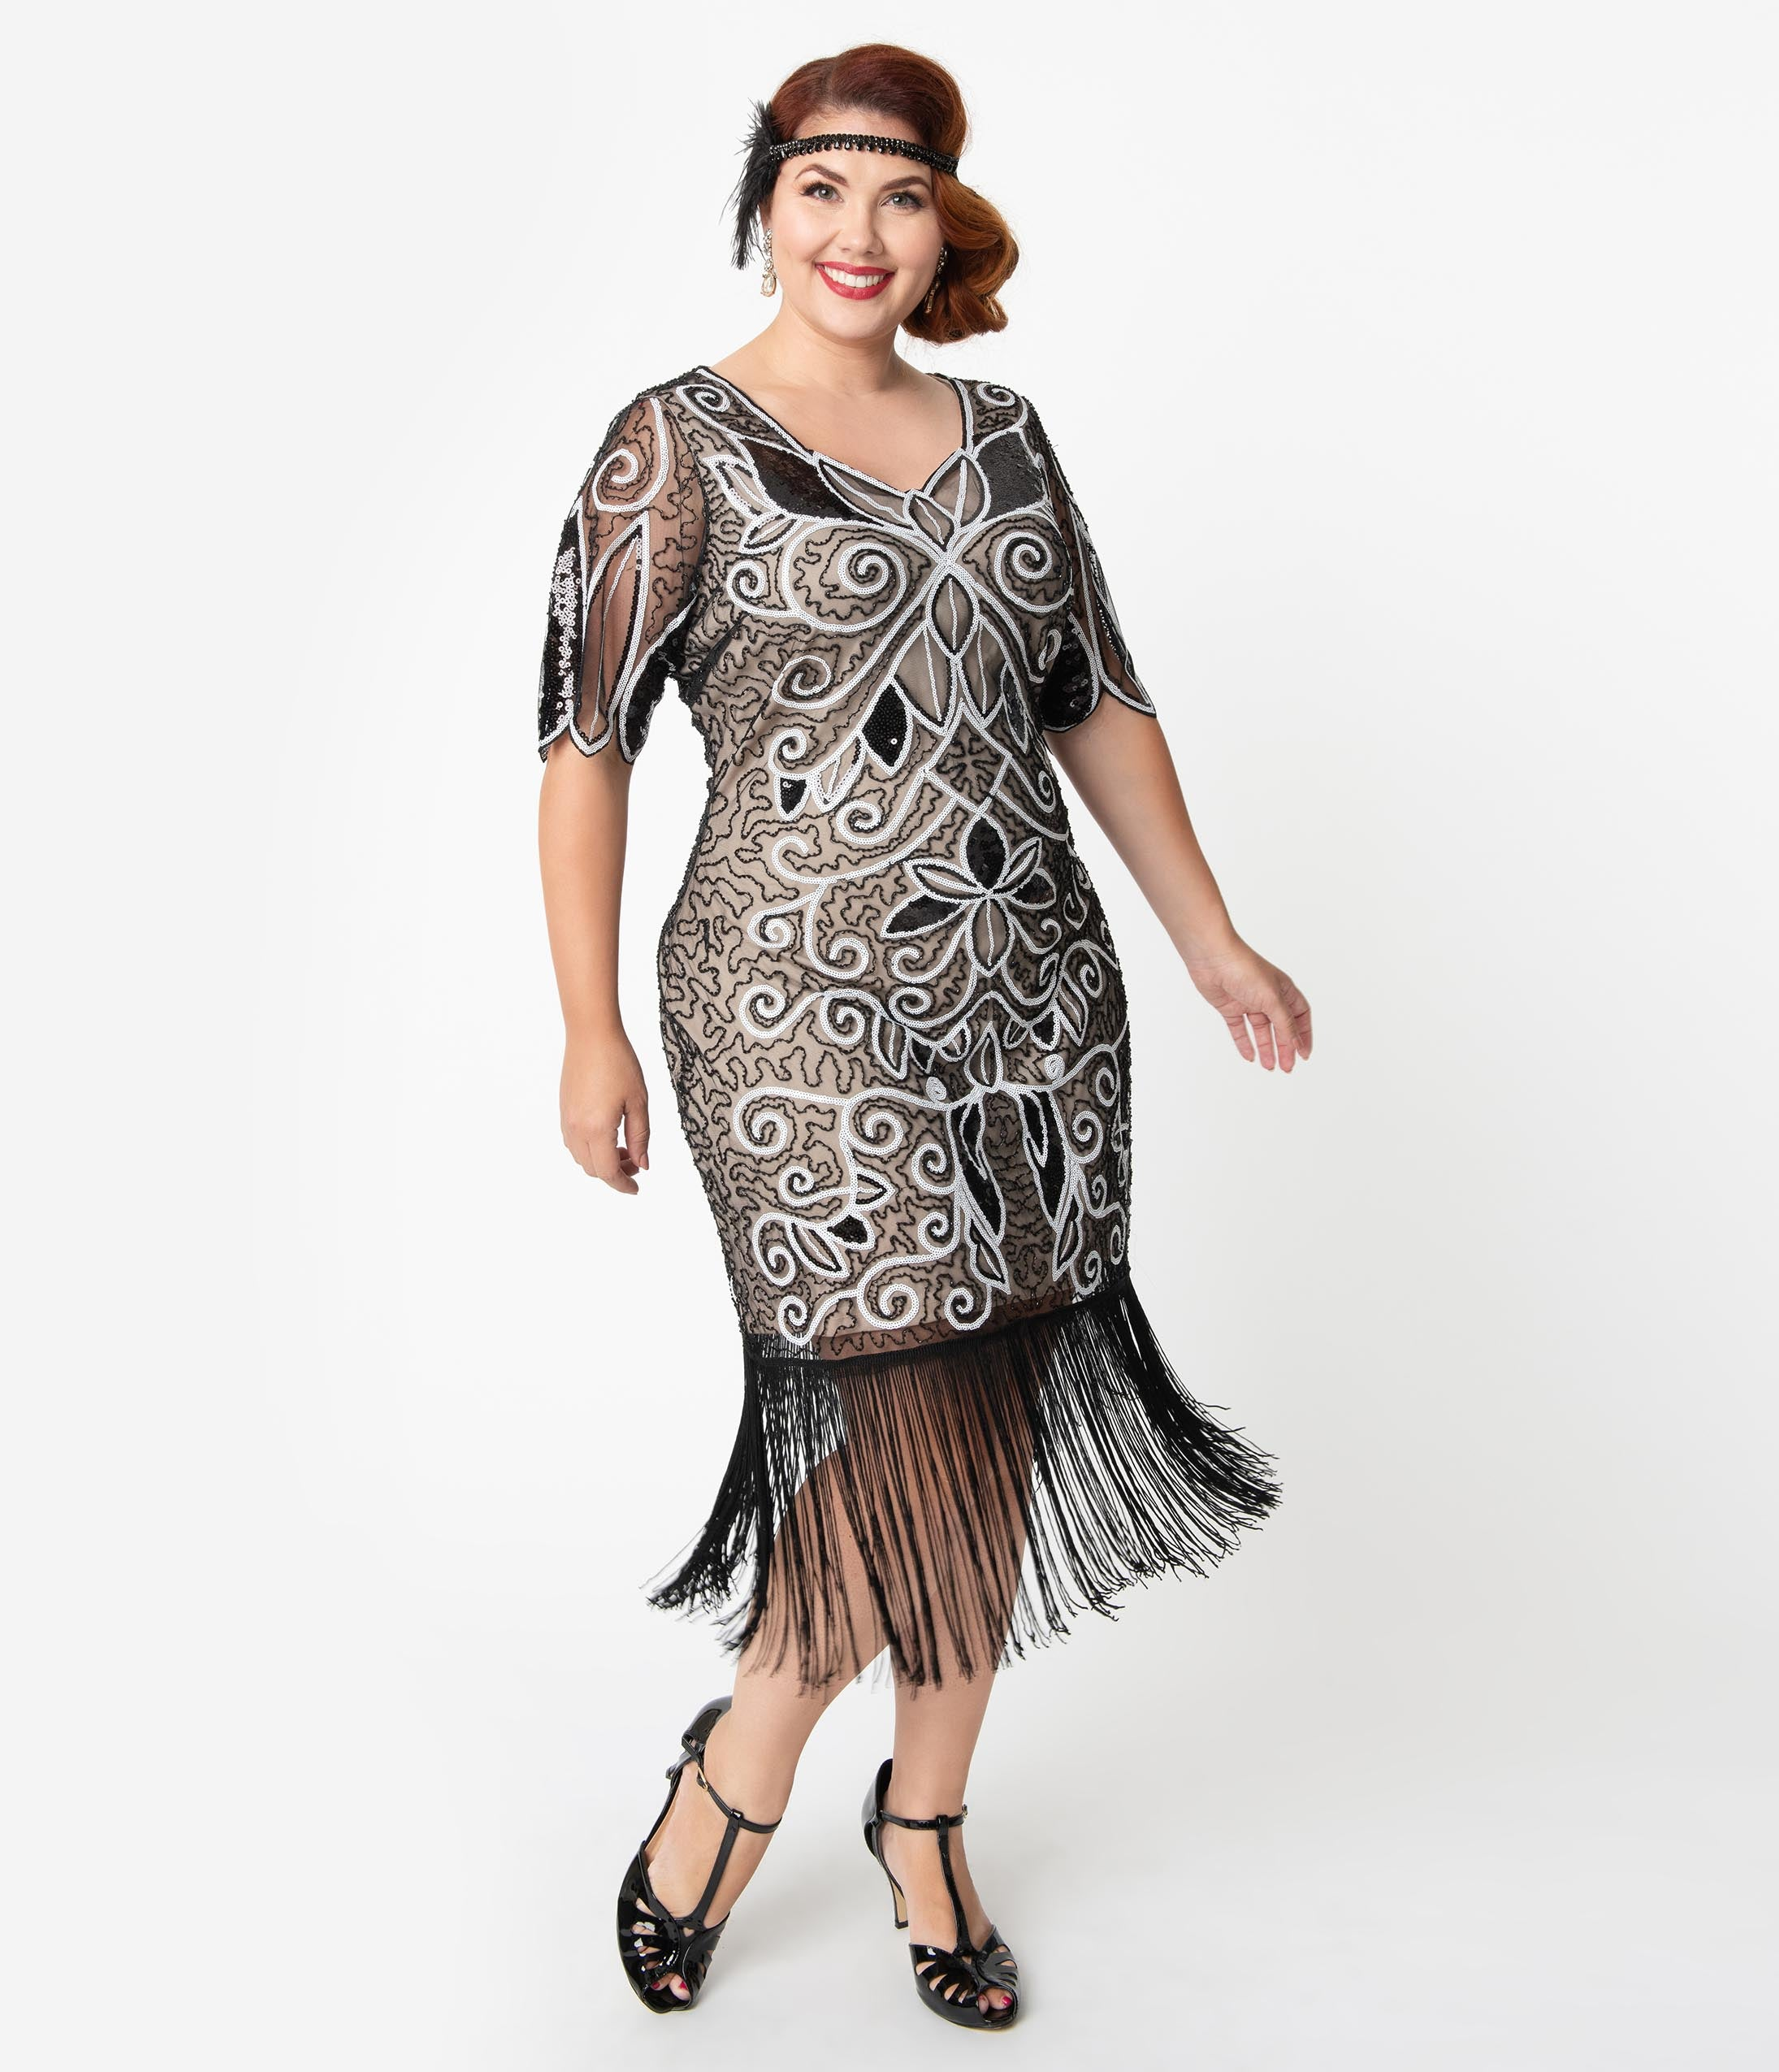 1920s Fashion & Clothing | Roaring 20s Attire Unique Vintage Plus Size 1920S Style Black  White Sequin Florent Flapper Dress $98.00 AT vintagedancer.com